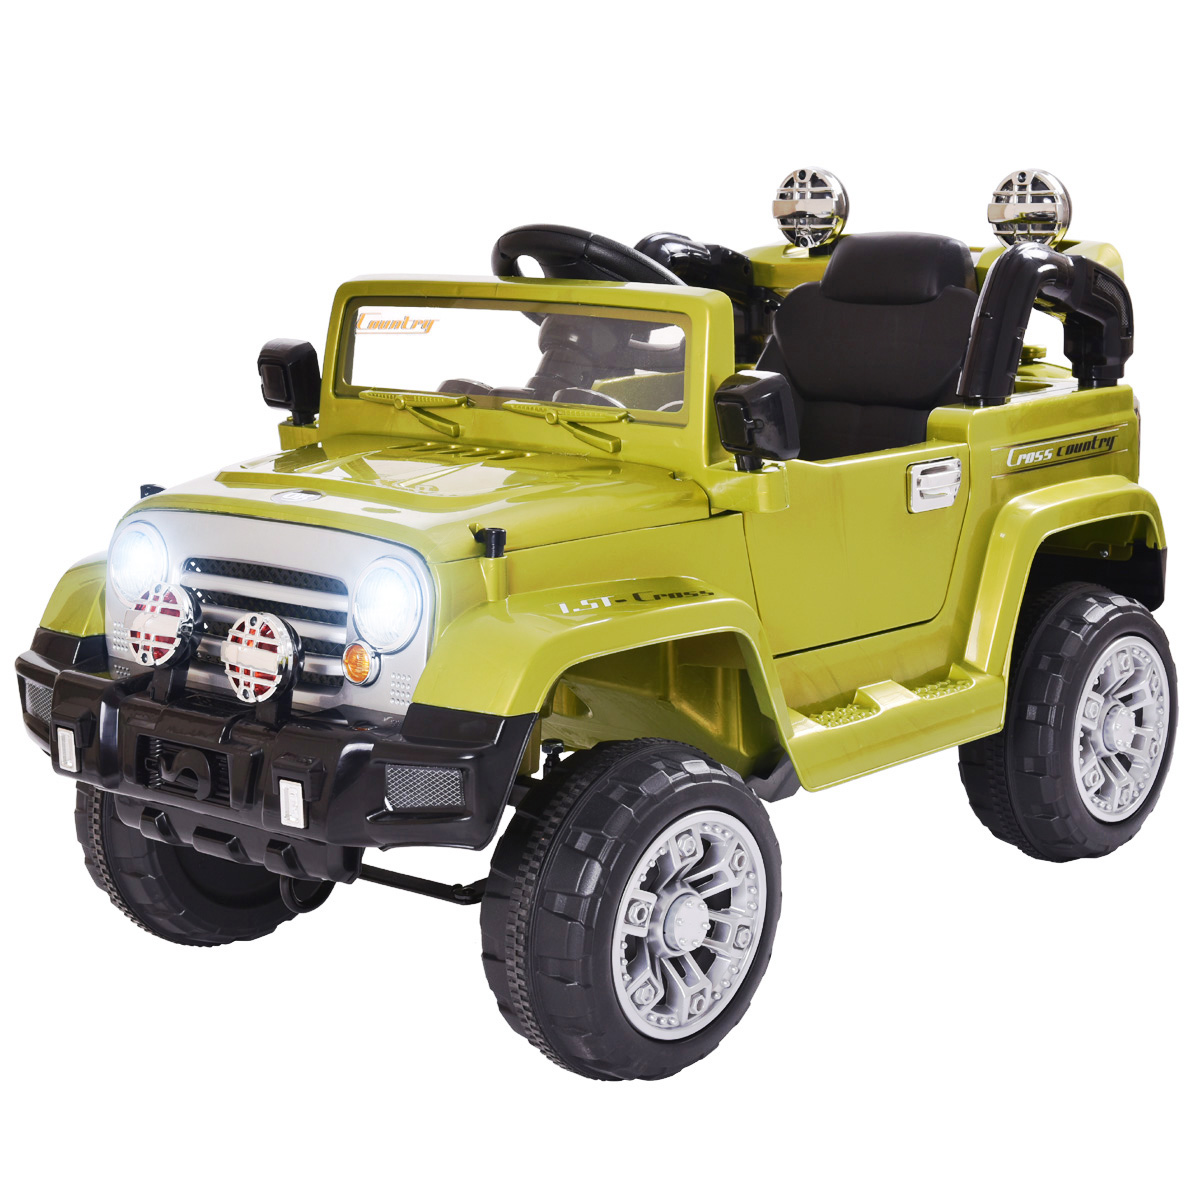 Jaxpety Kids Ride On 12V Jeep Style Battery Powered Toy Vehicle Remote Control w/ MP3 LED Lights, Green